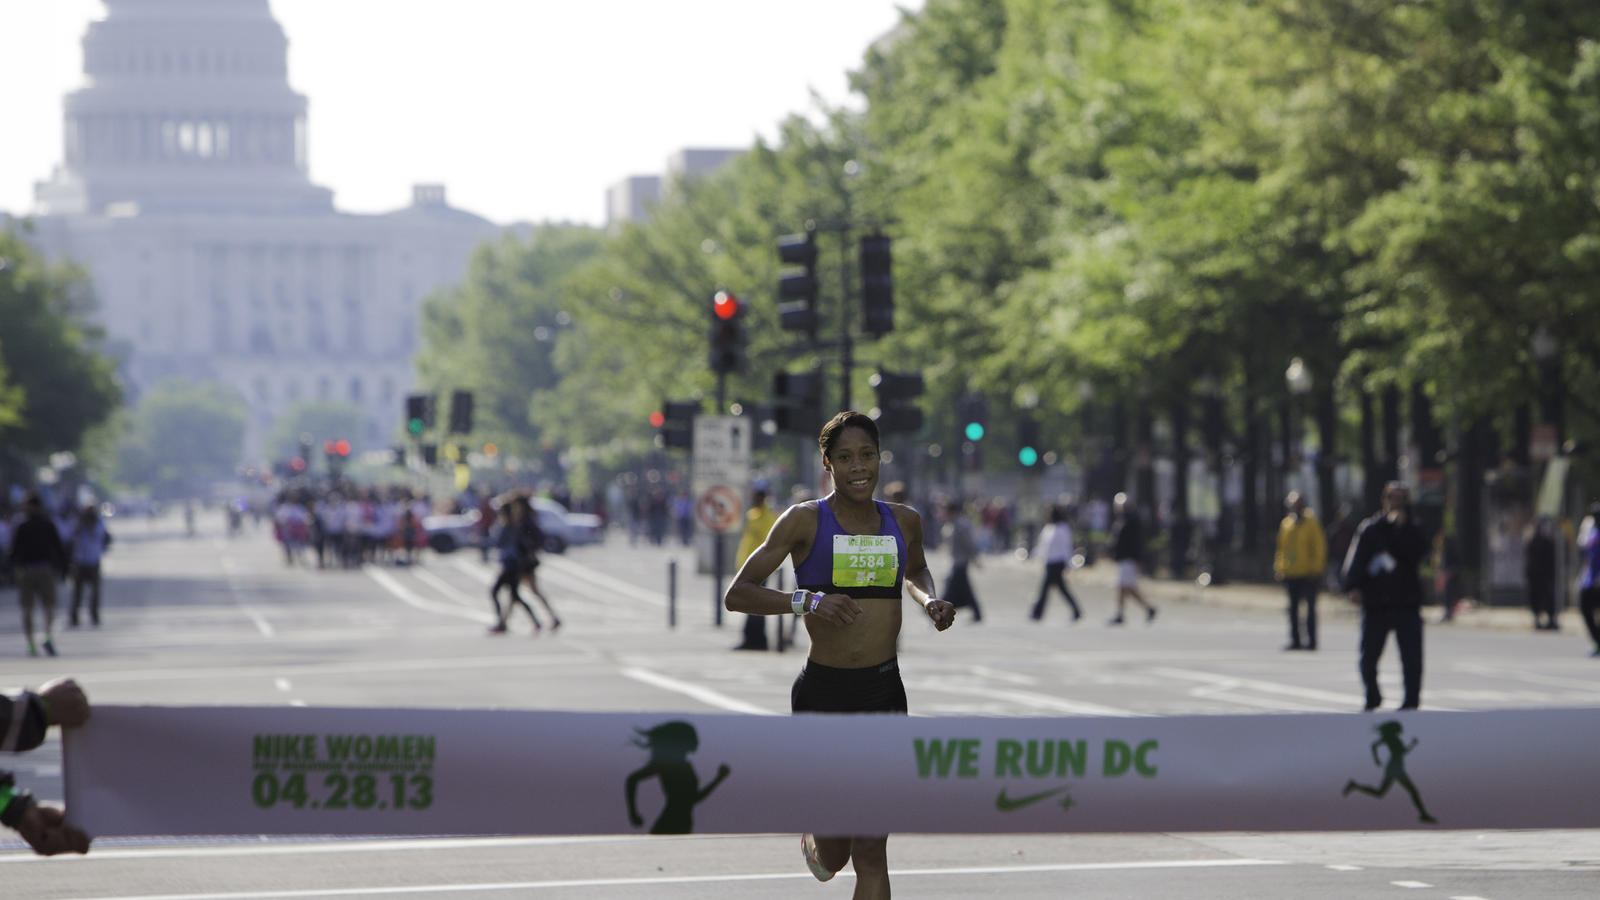 Winner of 2013 Nike Women Half Marathon Washington, D.C.